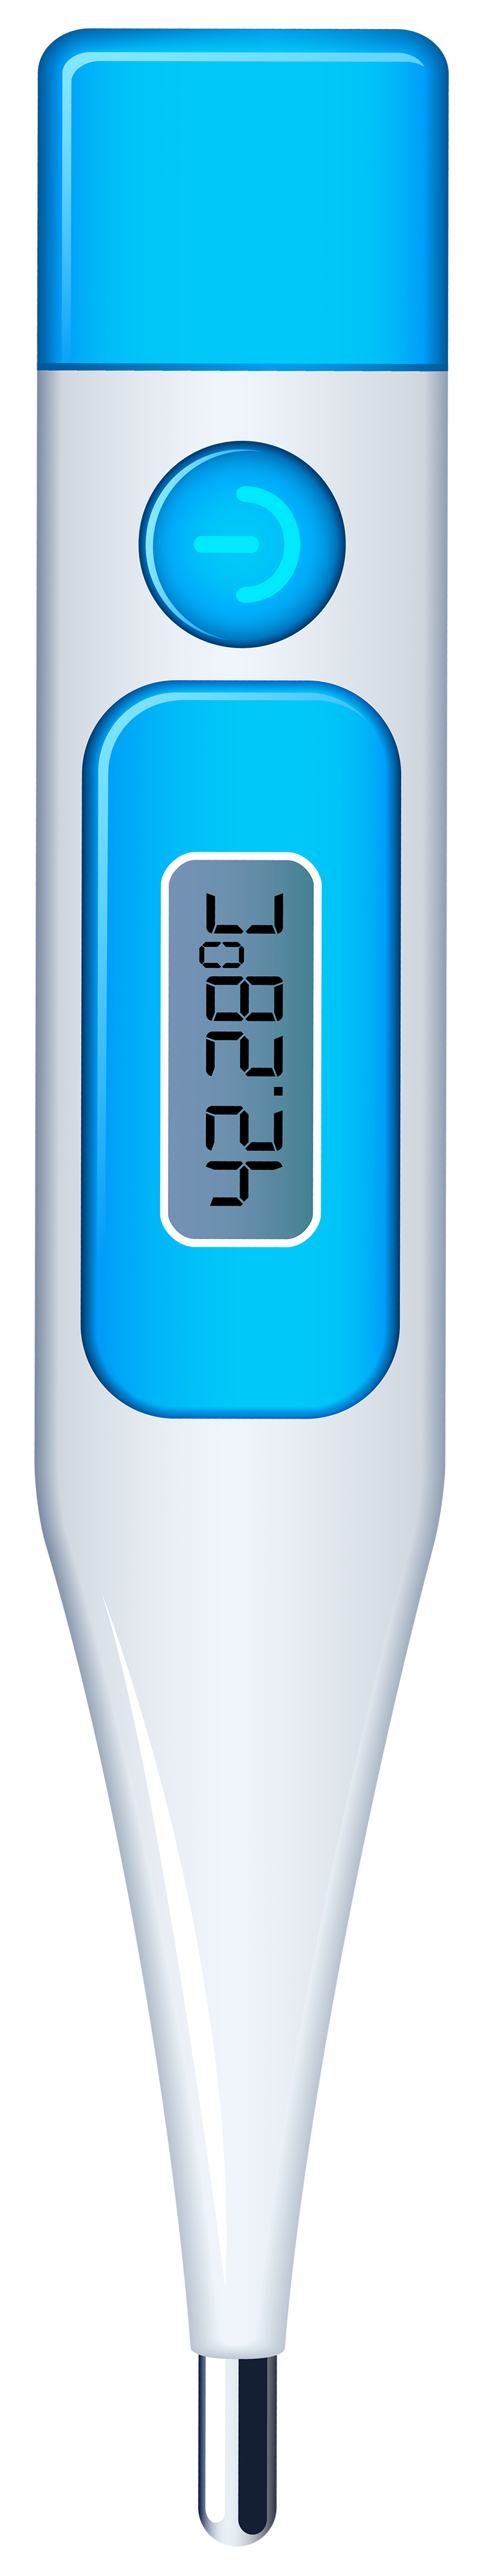 Clipart thermometer room thermometer. Digital png best web